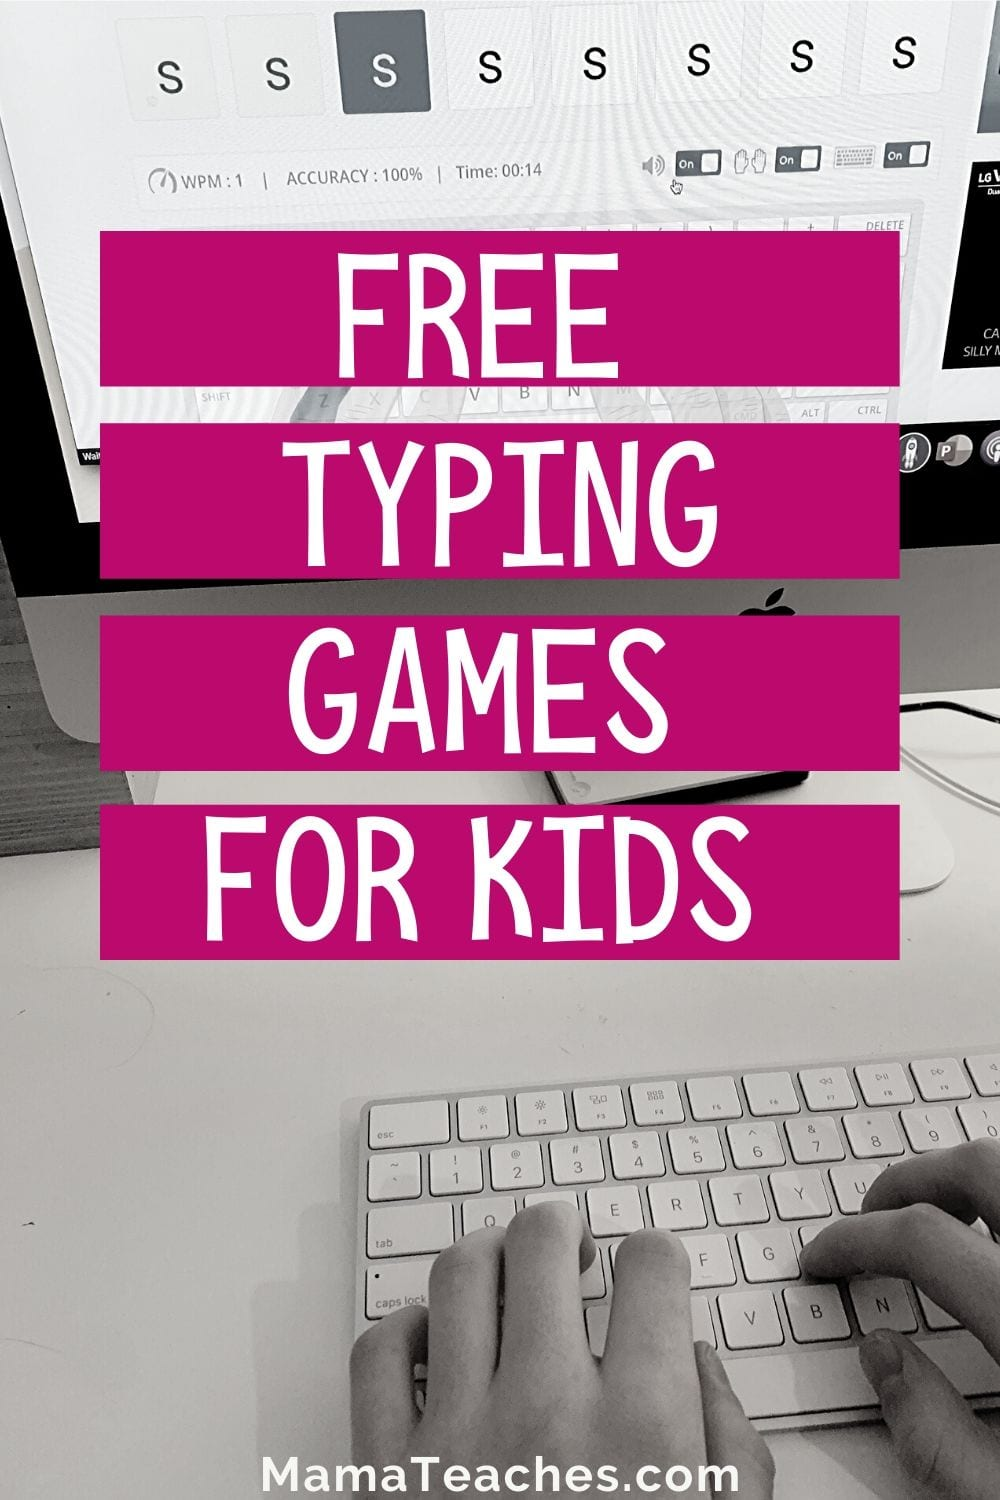 FREE Typing Games and Lessons for Kids - MamaTeaches.com